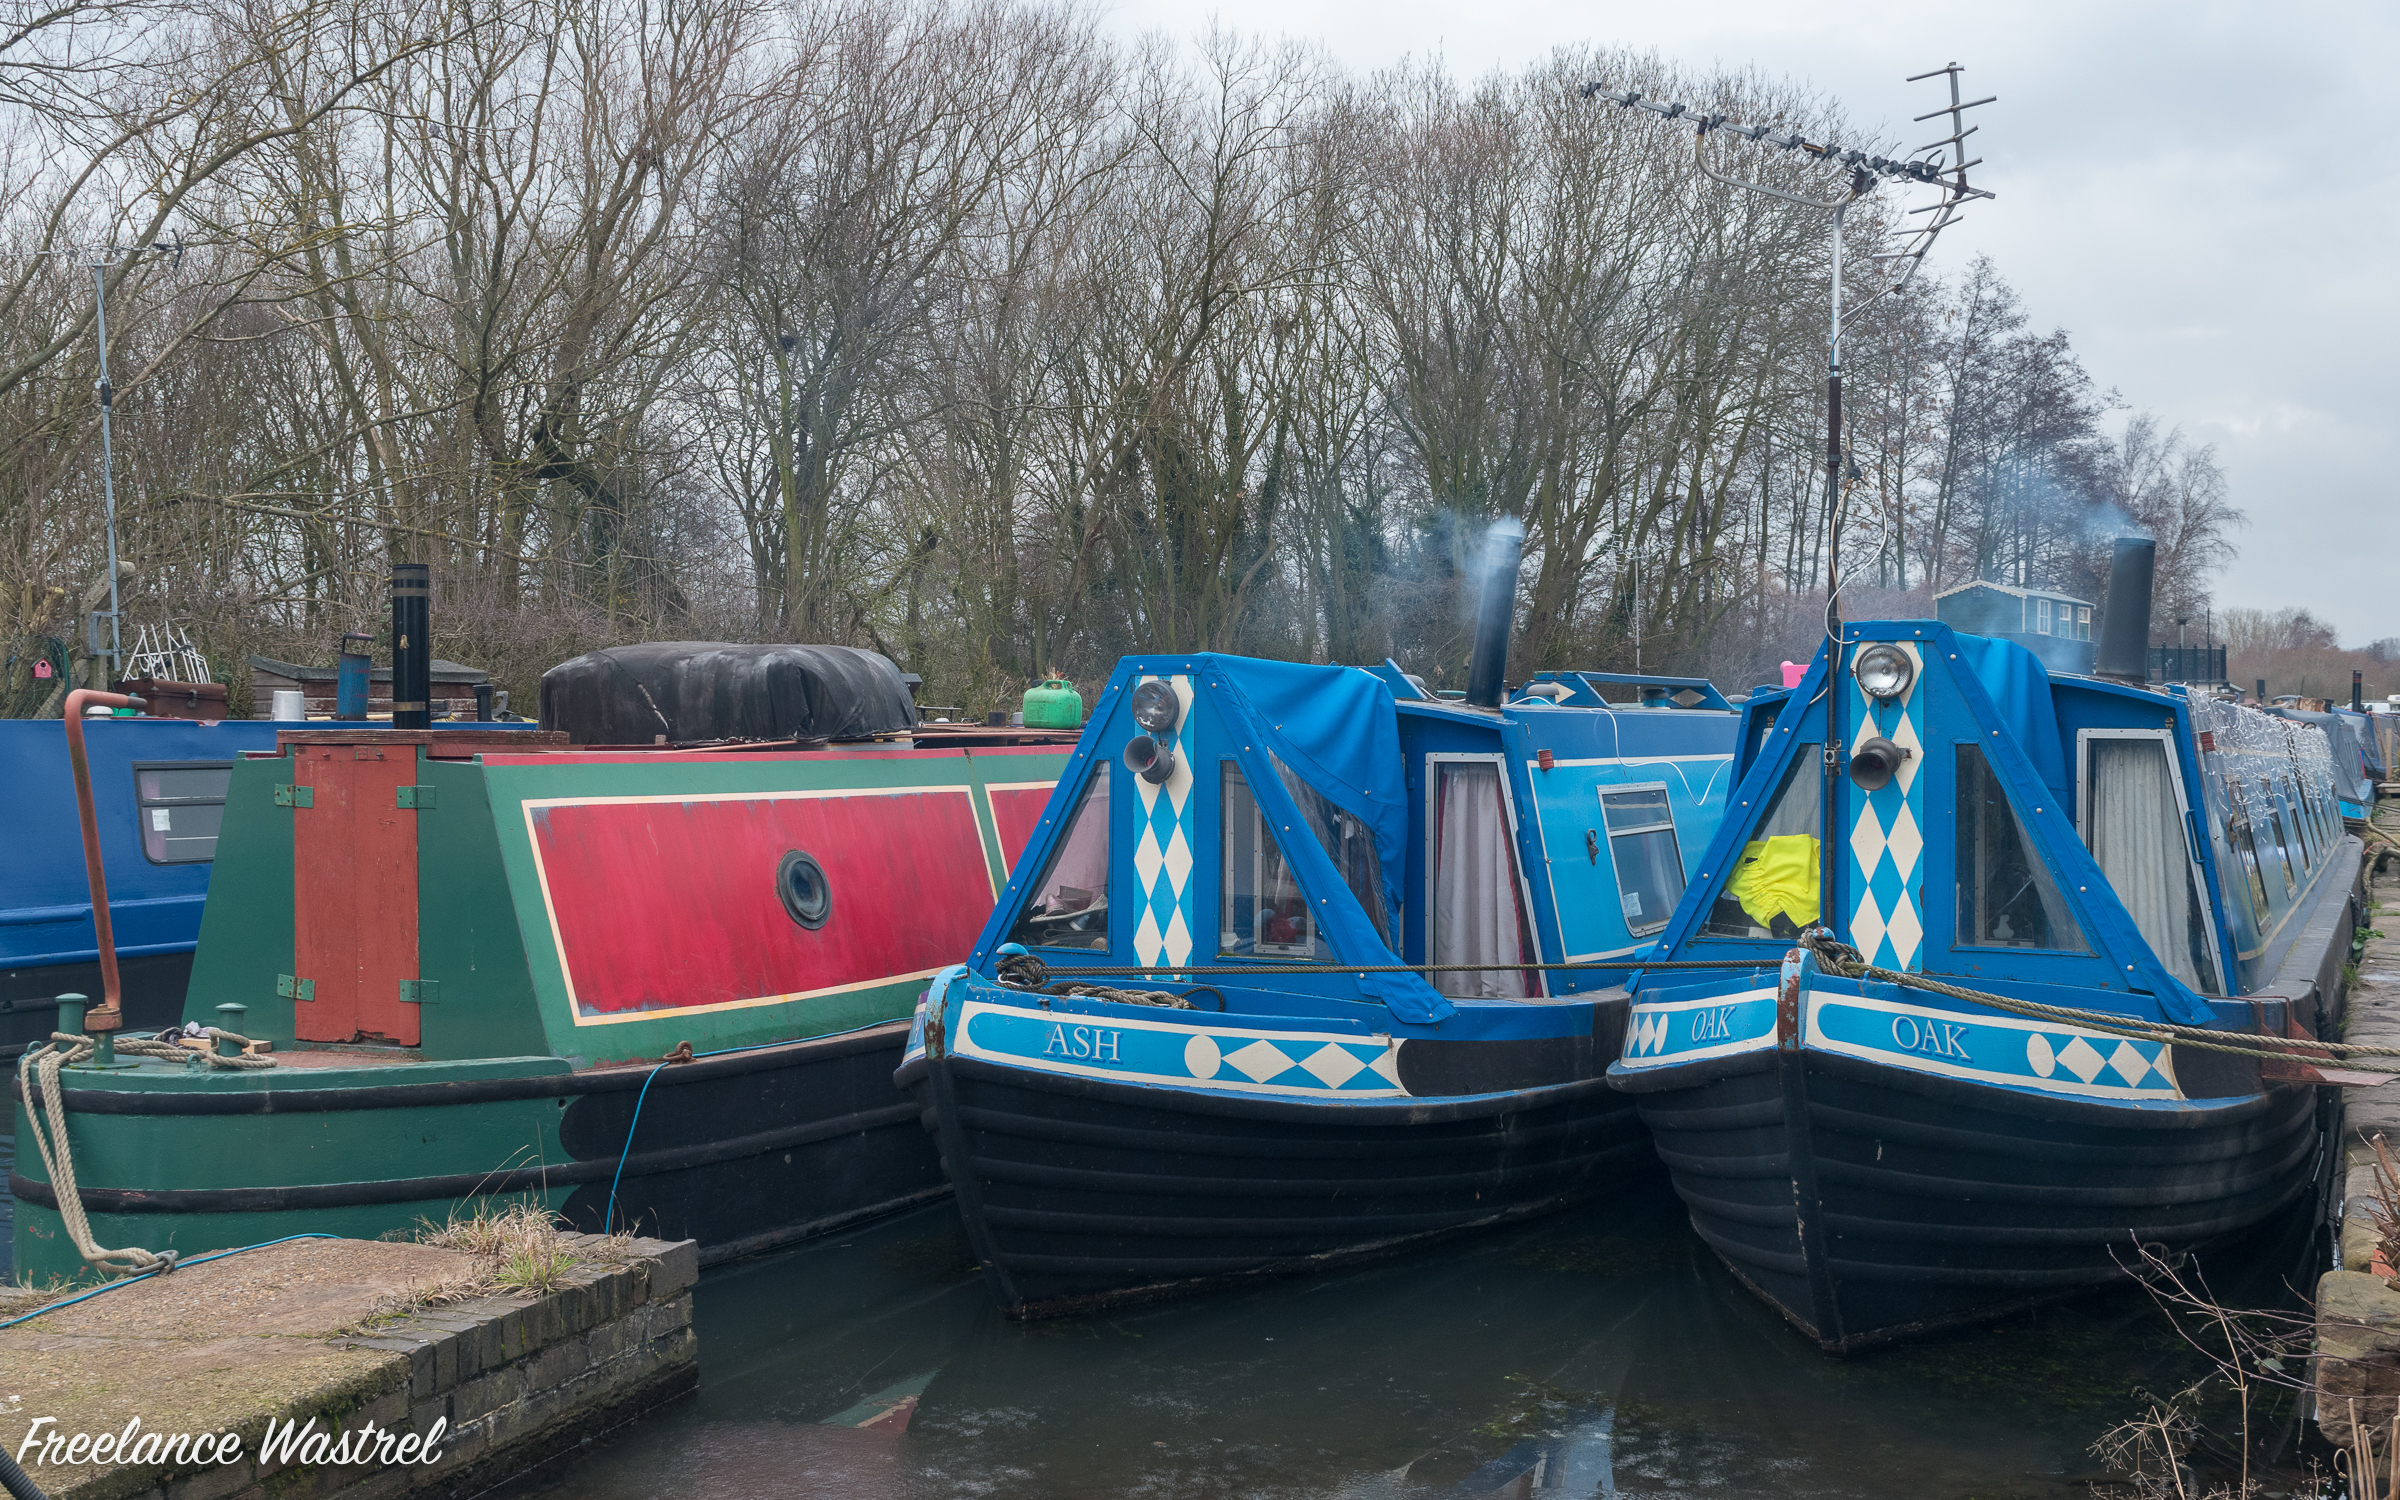 Narrow boats, Langley Mill, February 2019